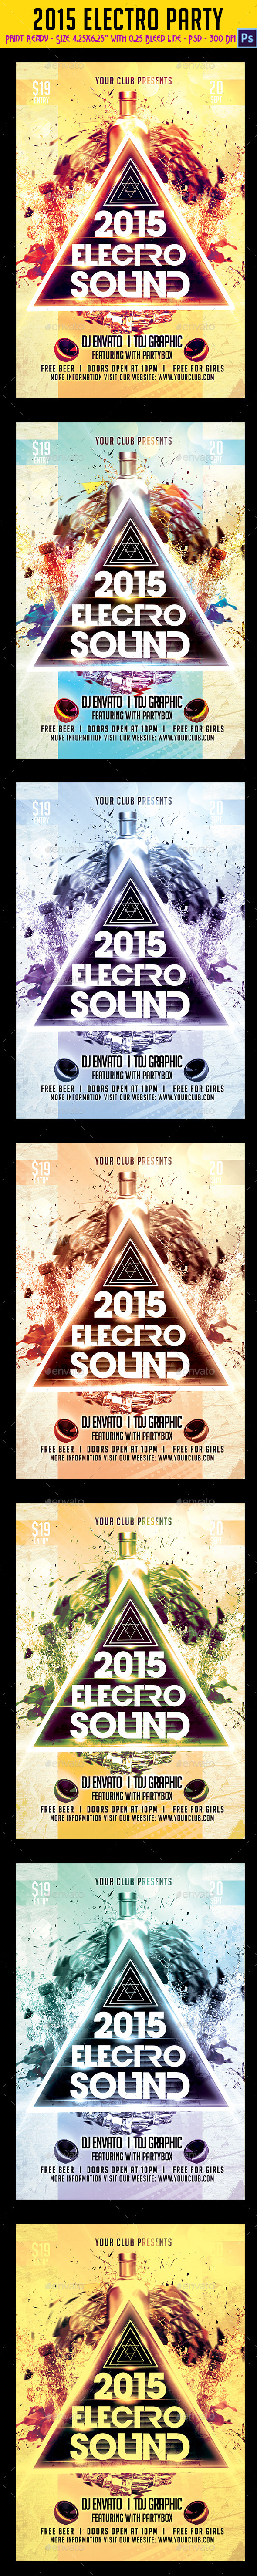 GraphicRiver 2015 Electro Party Flyer 9631005